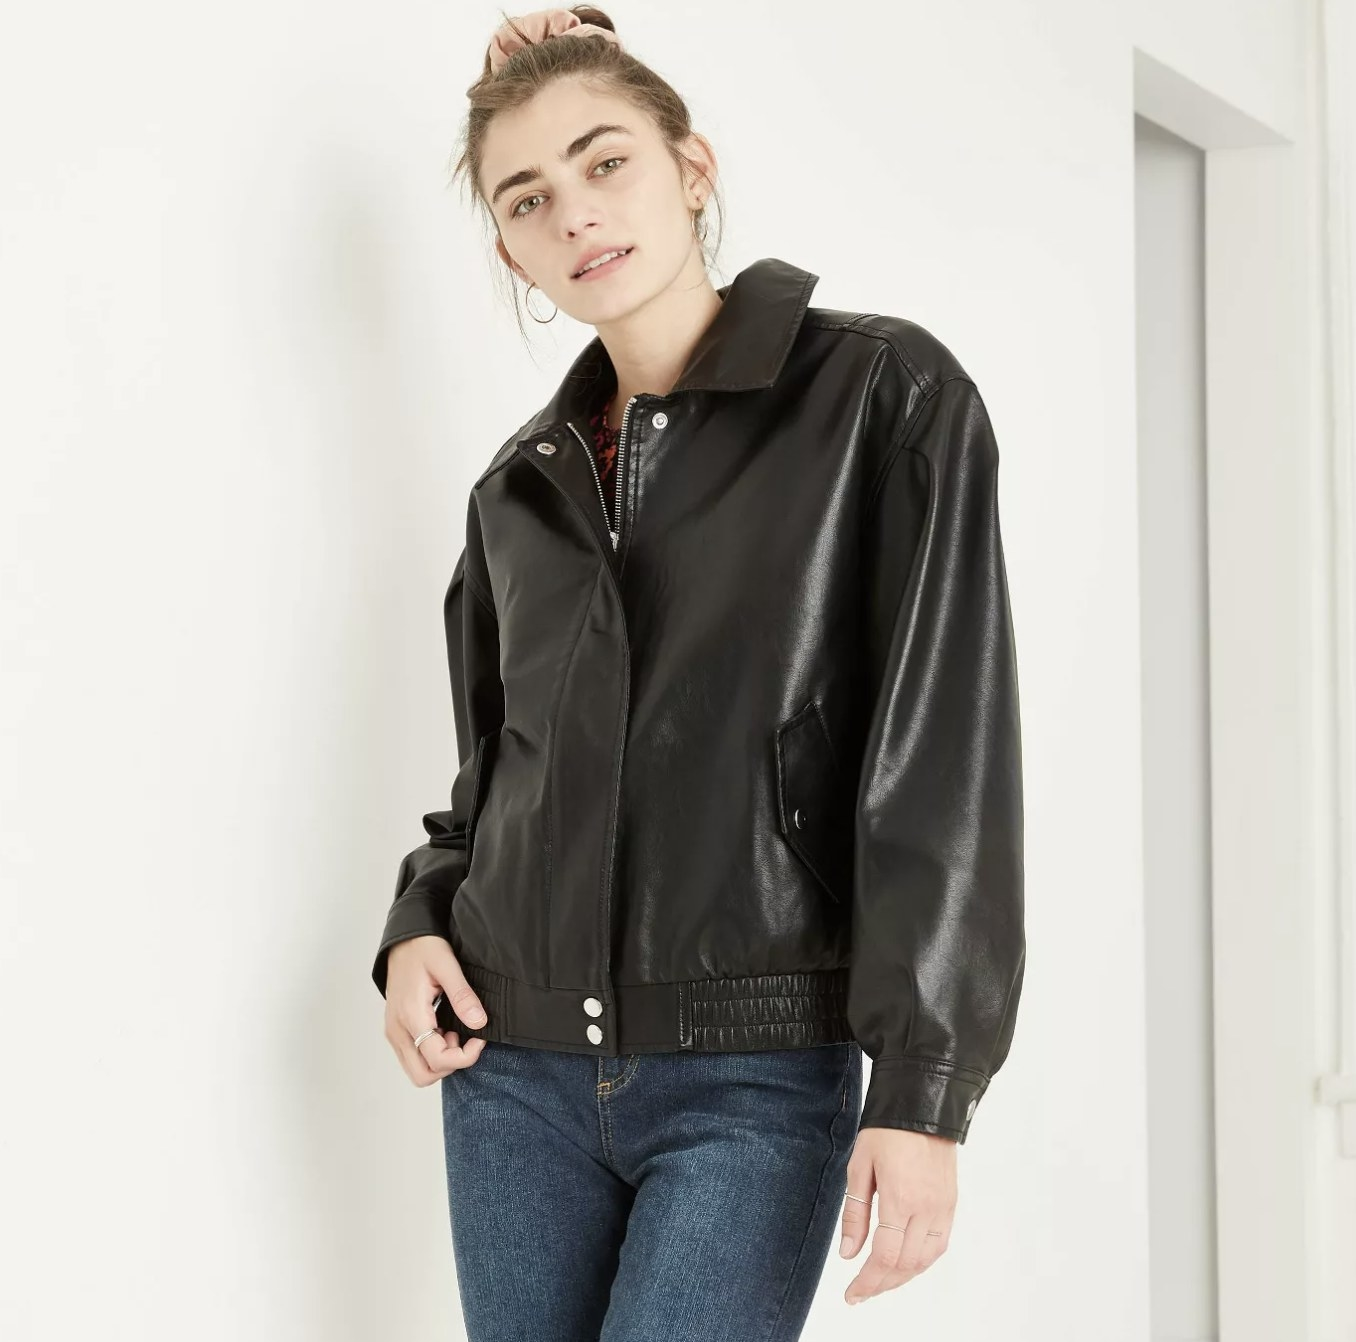 Model wears faux leather bomber jacket with jeans